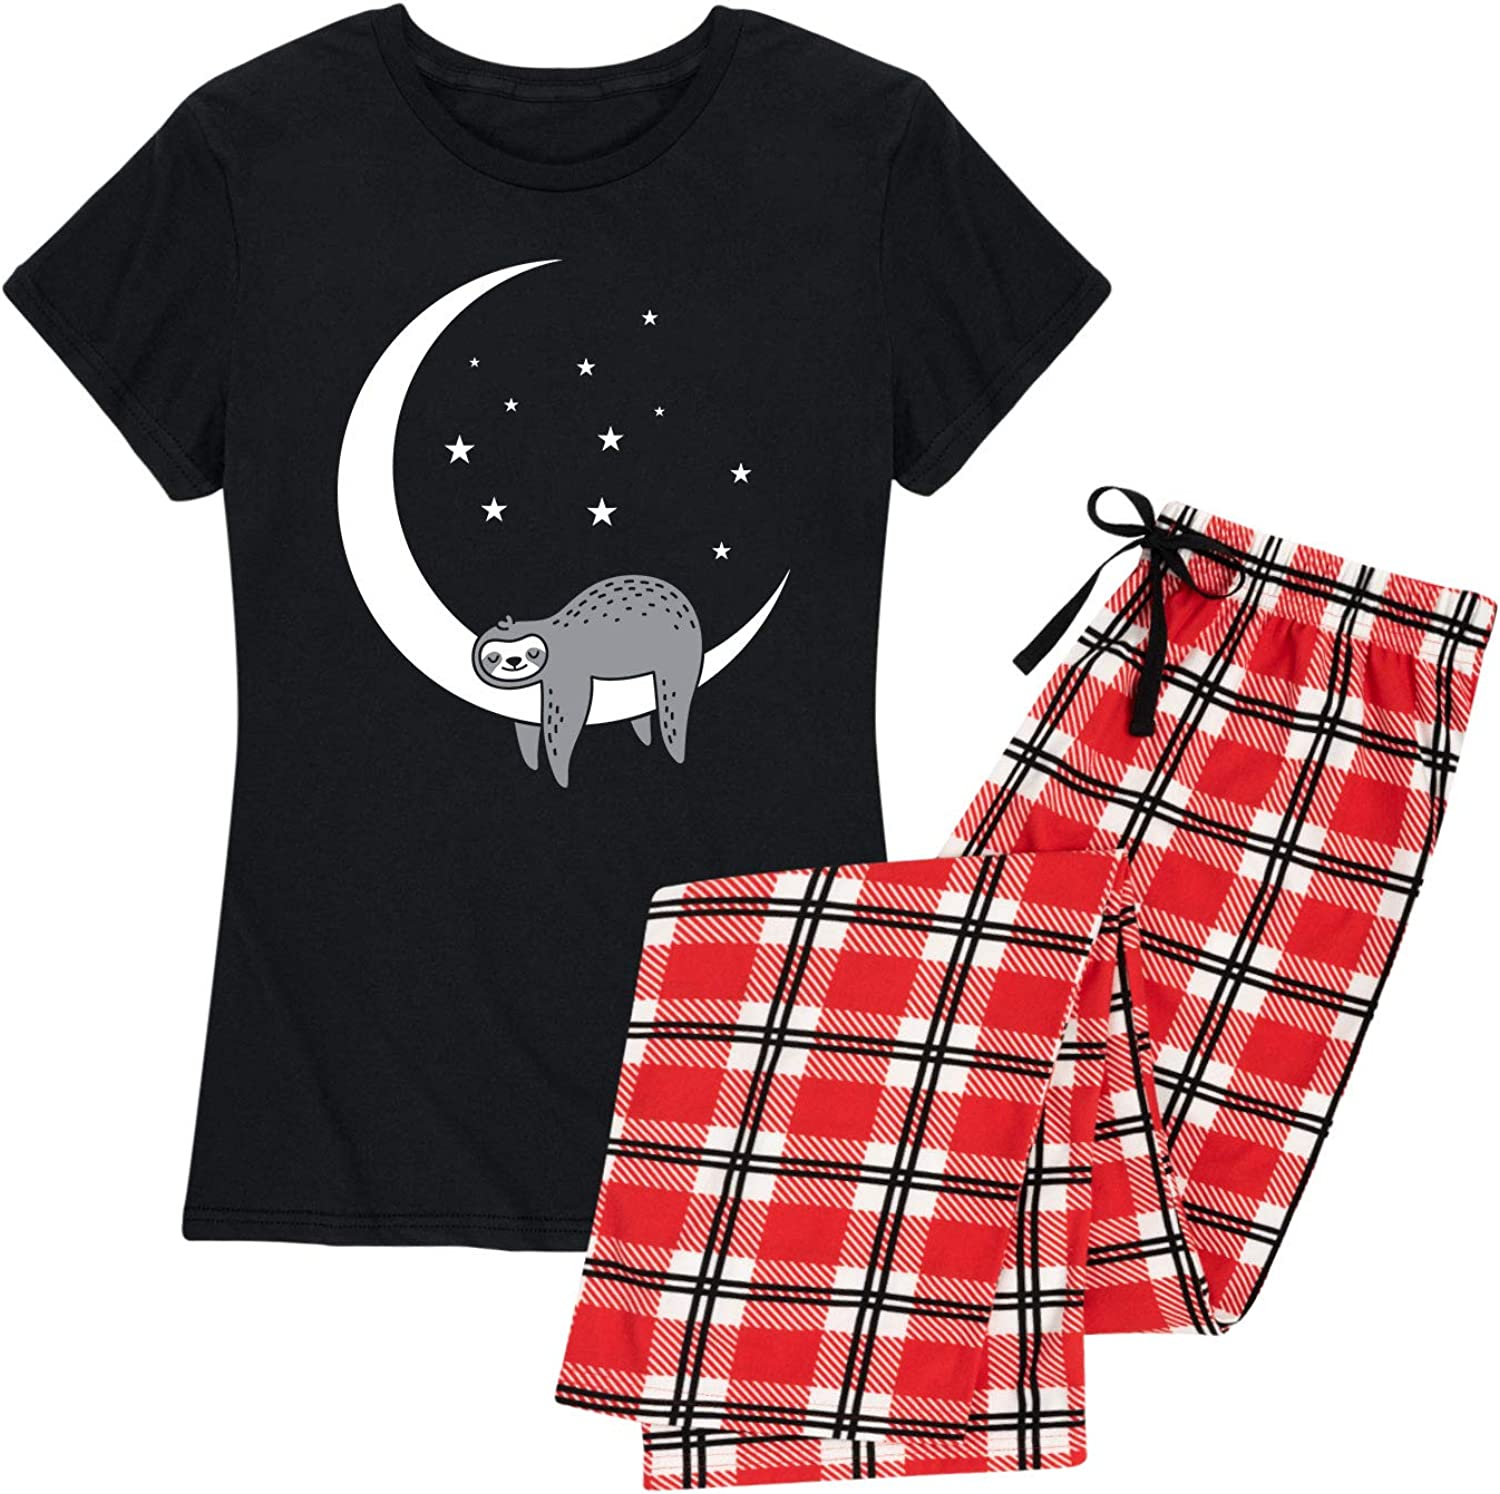 Sleeping Moon Special price Cheap mail order specialty store Sloth - Set Pajama Women's